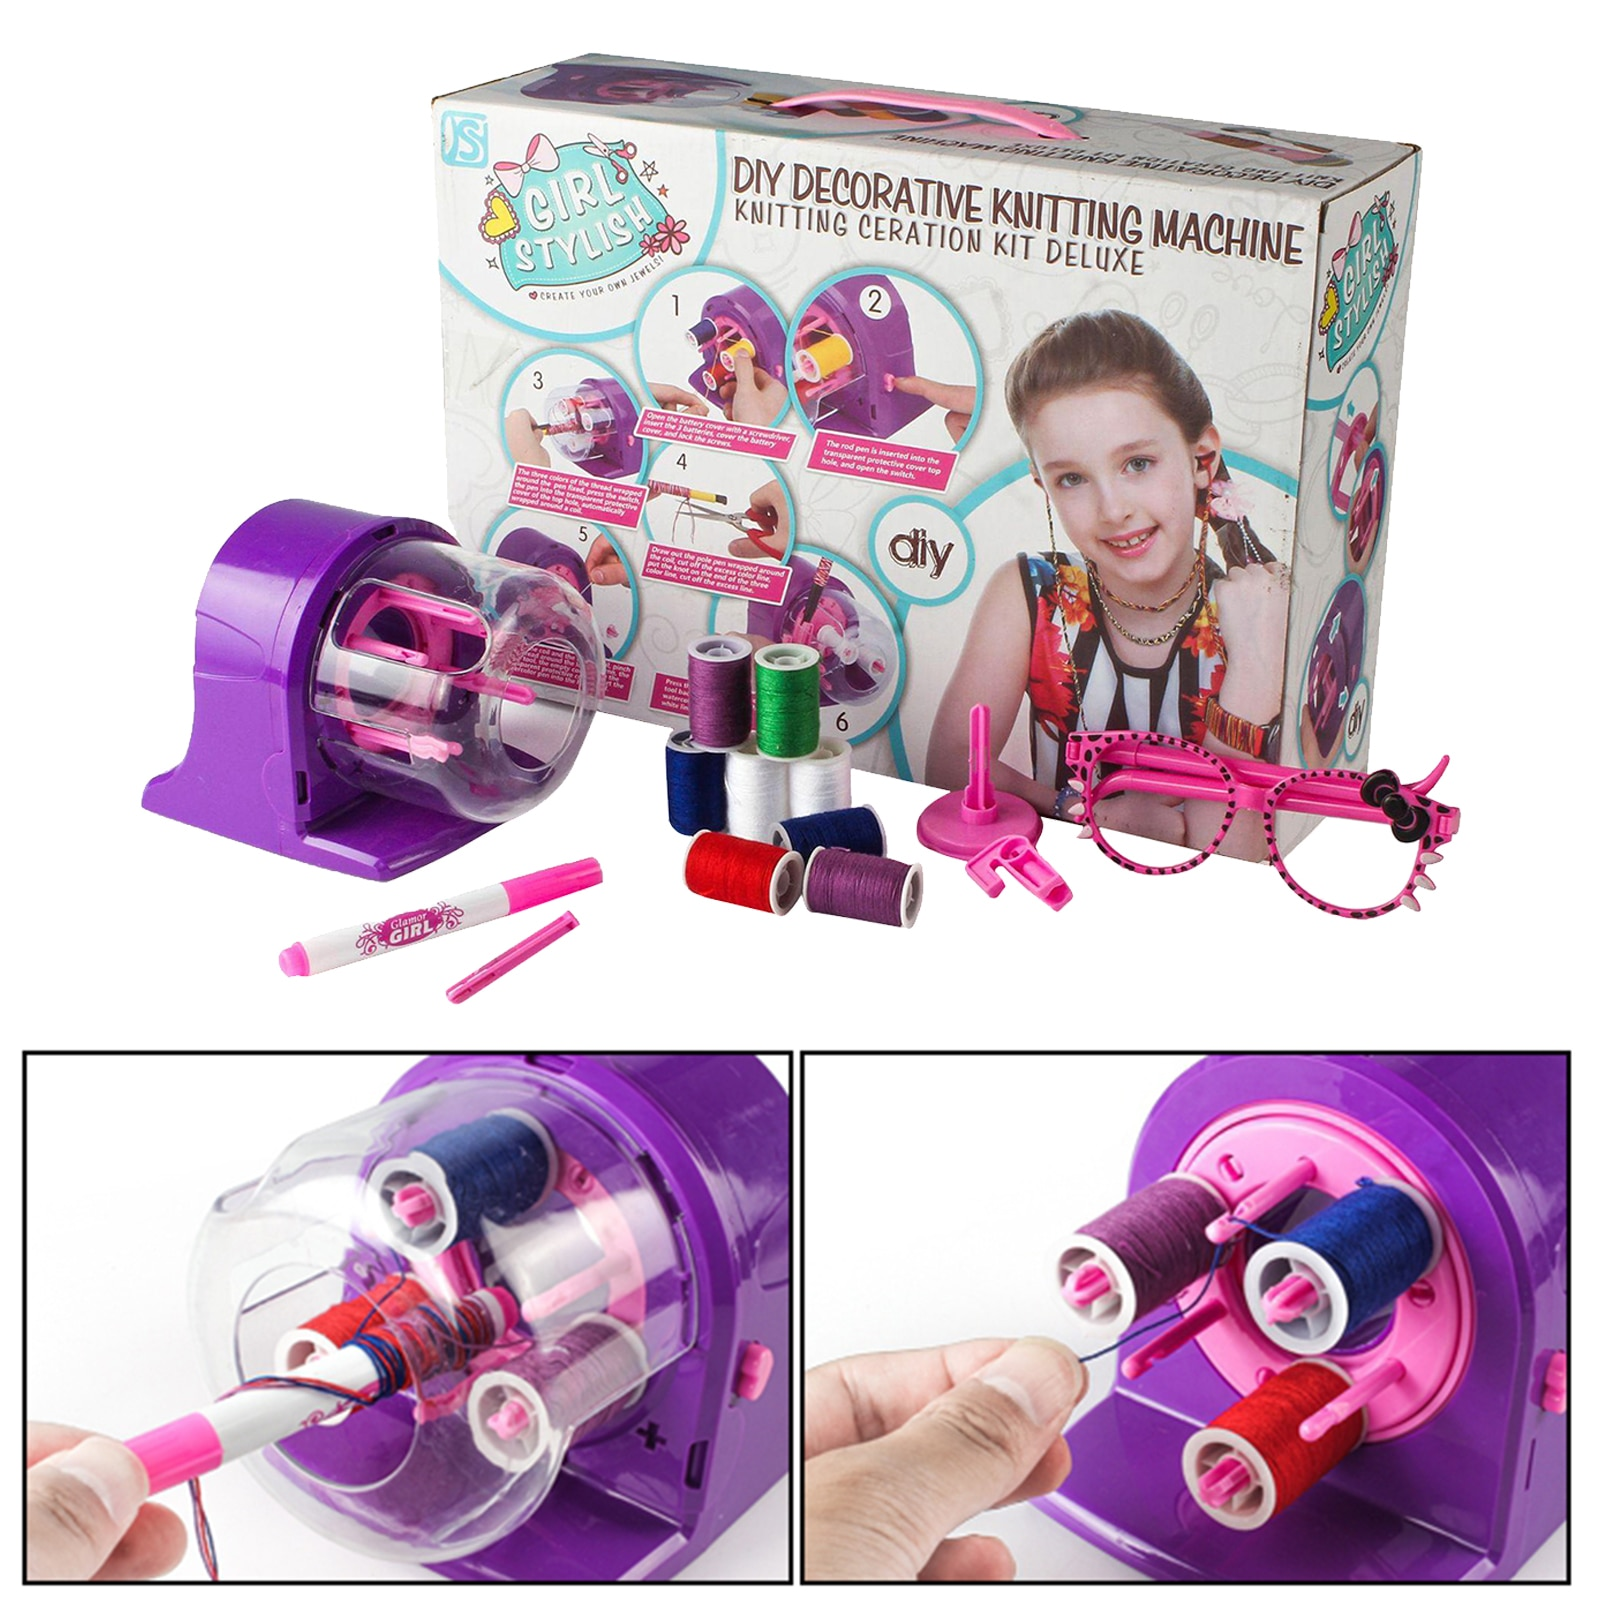 needle sewing tools diy kids knitting machine kit weaving loom for scarf hat sweater kids children pretend play toys knitting to Electric Sewing Knitting Machine Hairband Jewelry Bracelet Thread Rope DIY Knitting Weaving Twist Loom Maker